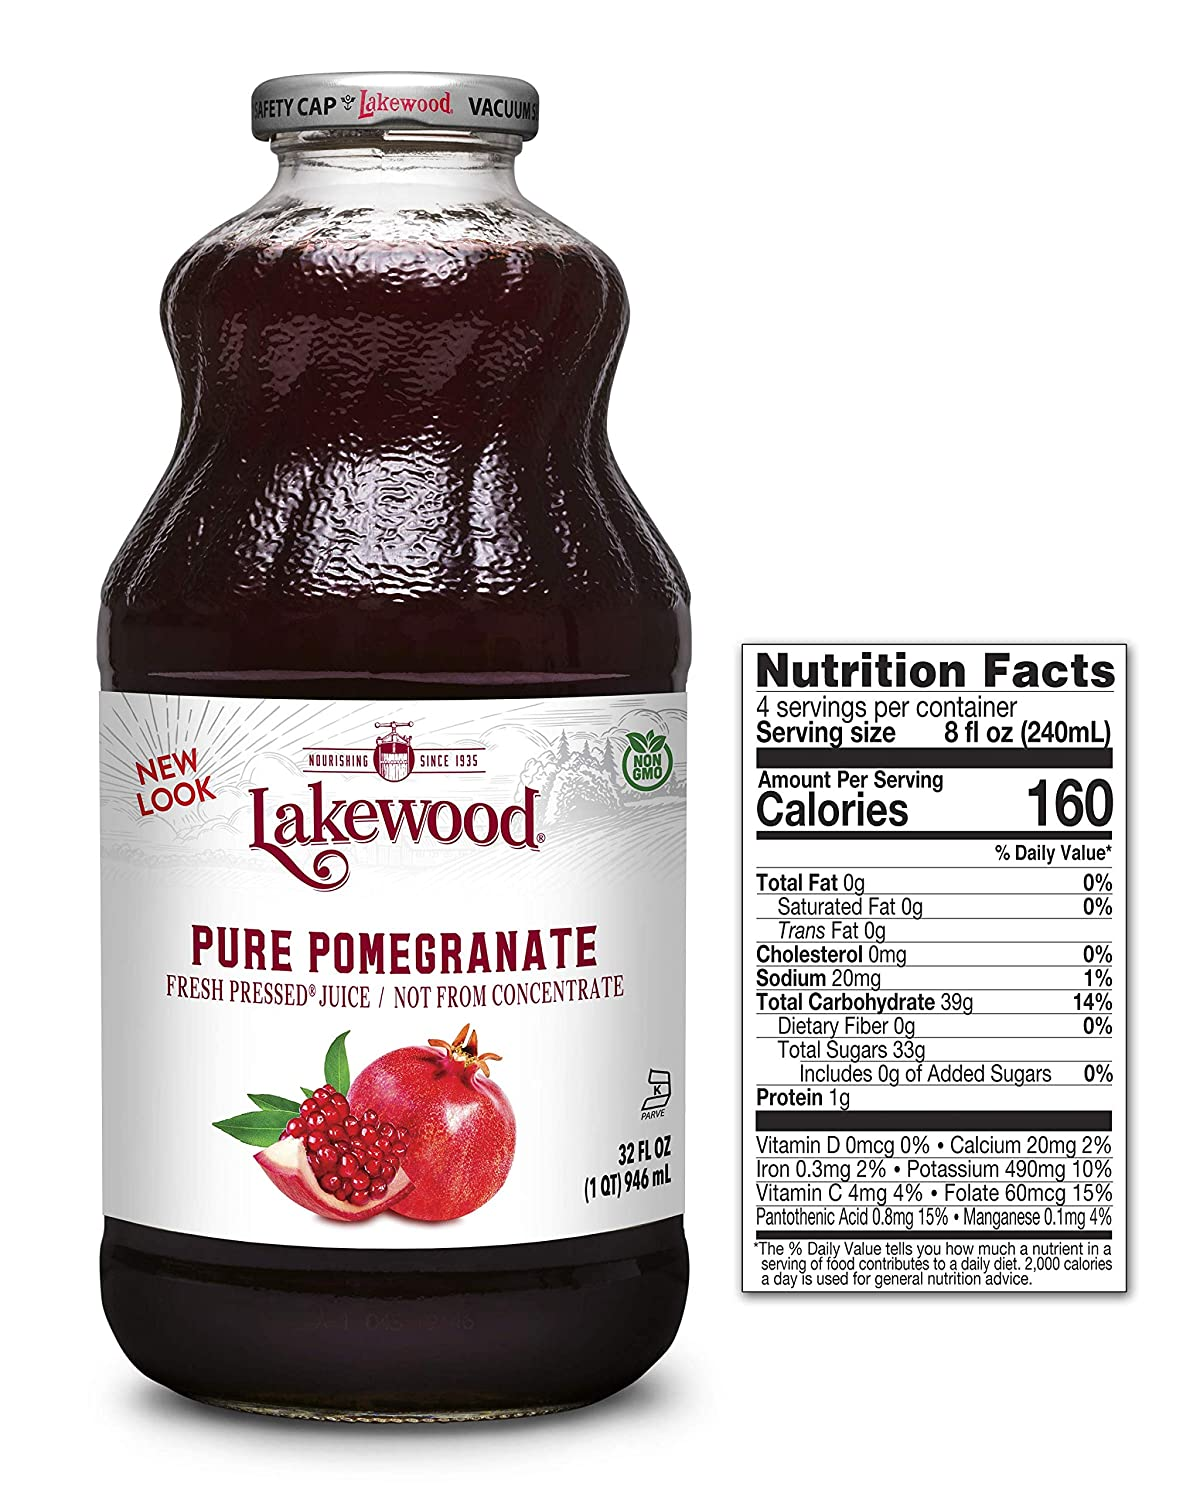 Lakewood PURE Pomegranate Juice